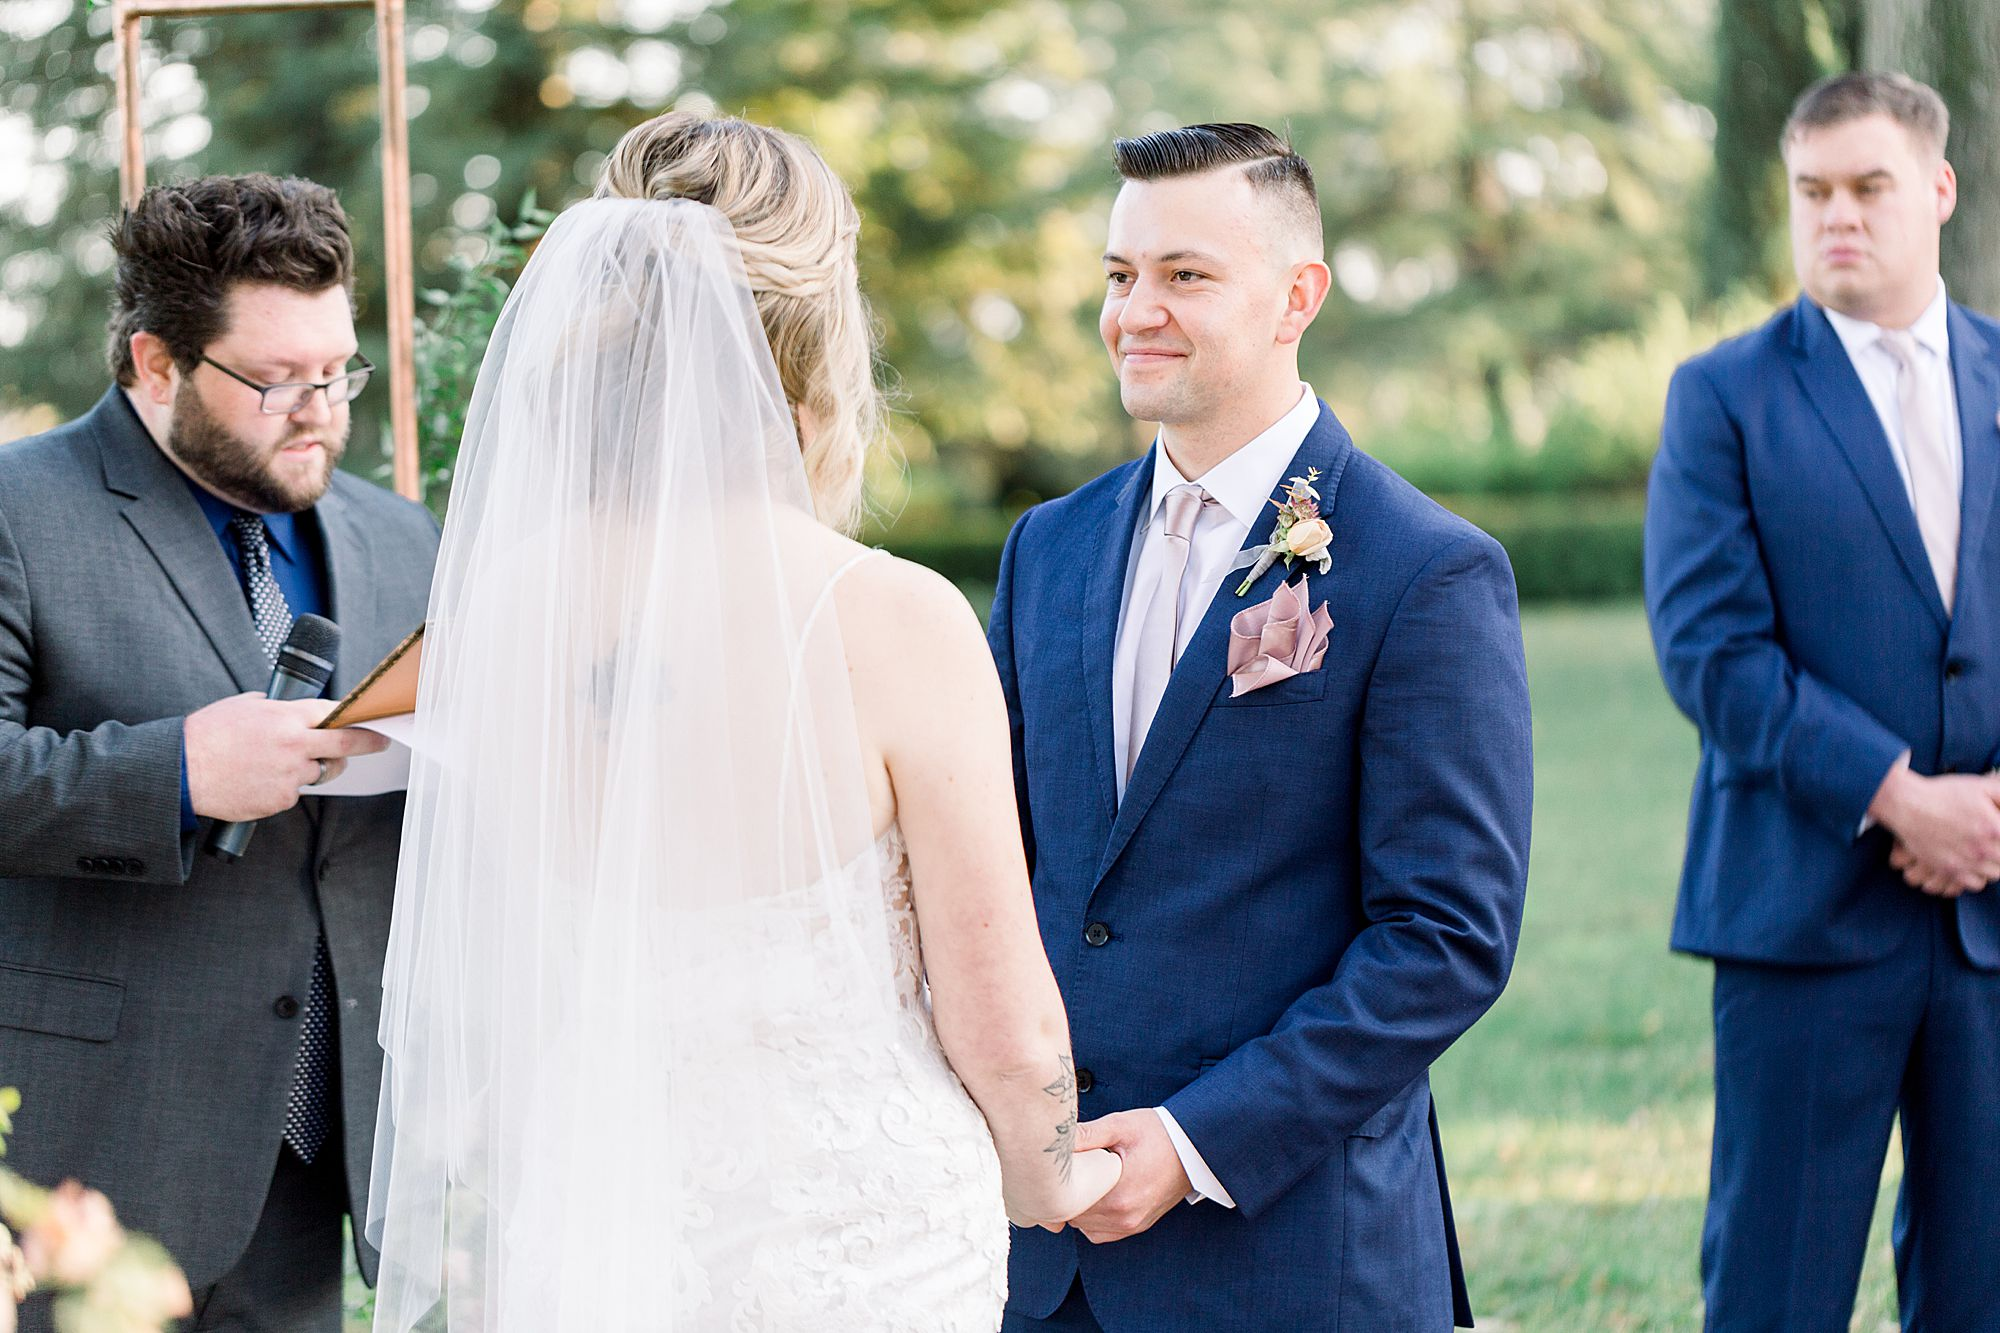 Inn at Park Winters Wedding - Lindsay and Shane - Ashley Baumgartner - Park Winters Wedding Photographer - Sacramento Wedding Photographer_0053.jpg